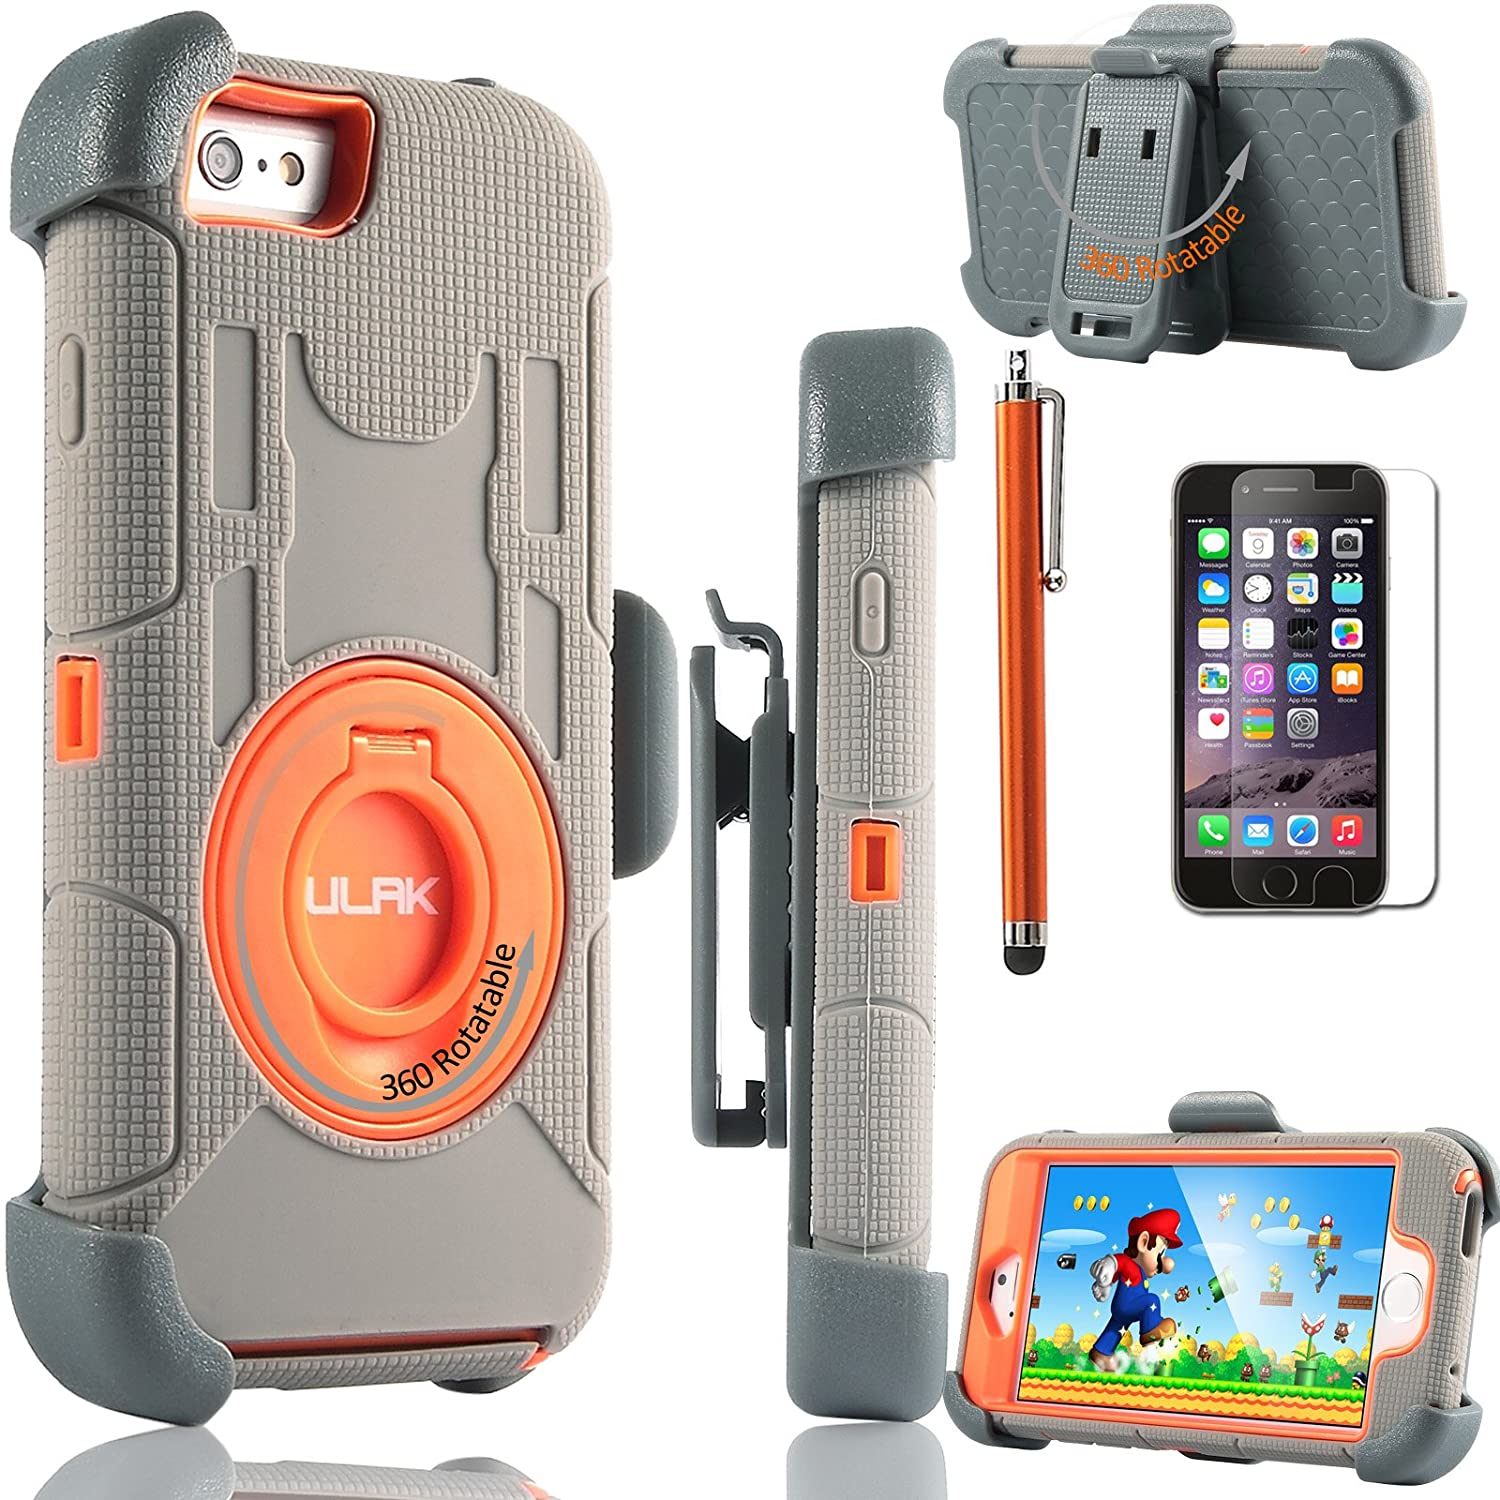 Top 10 Best Iphone 6s Plus Heavy Duty Armor Case Covers 2018 2020 Uag Slate 6 Holster 47 Inchulak Rugged Shockproof Protective With Built In Rotating